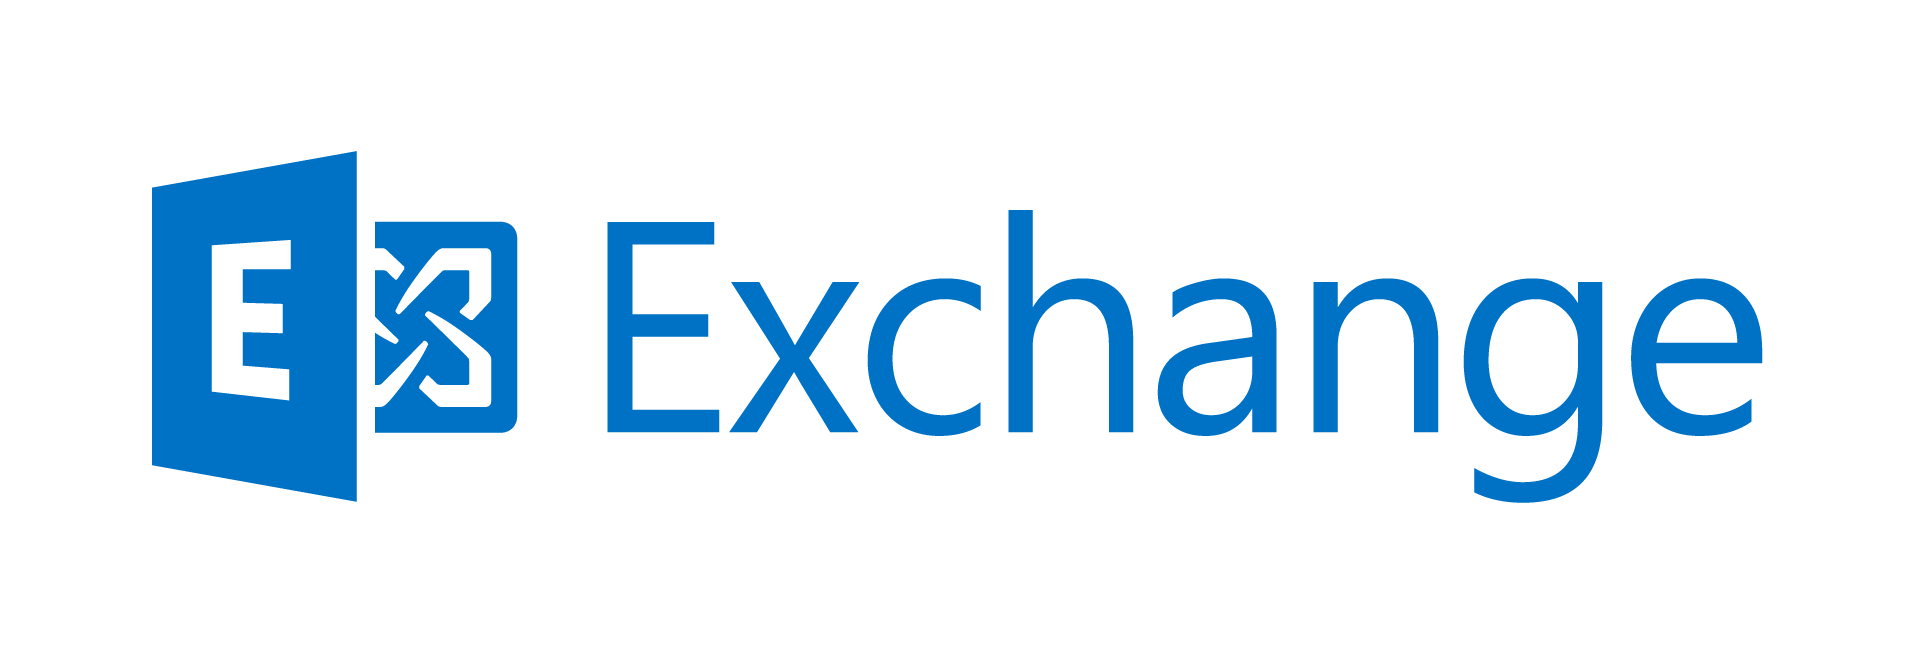 What is Microsoft Exchange?